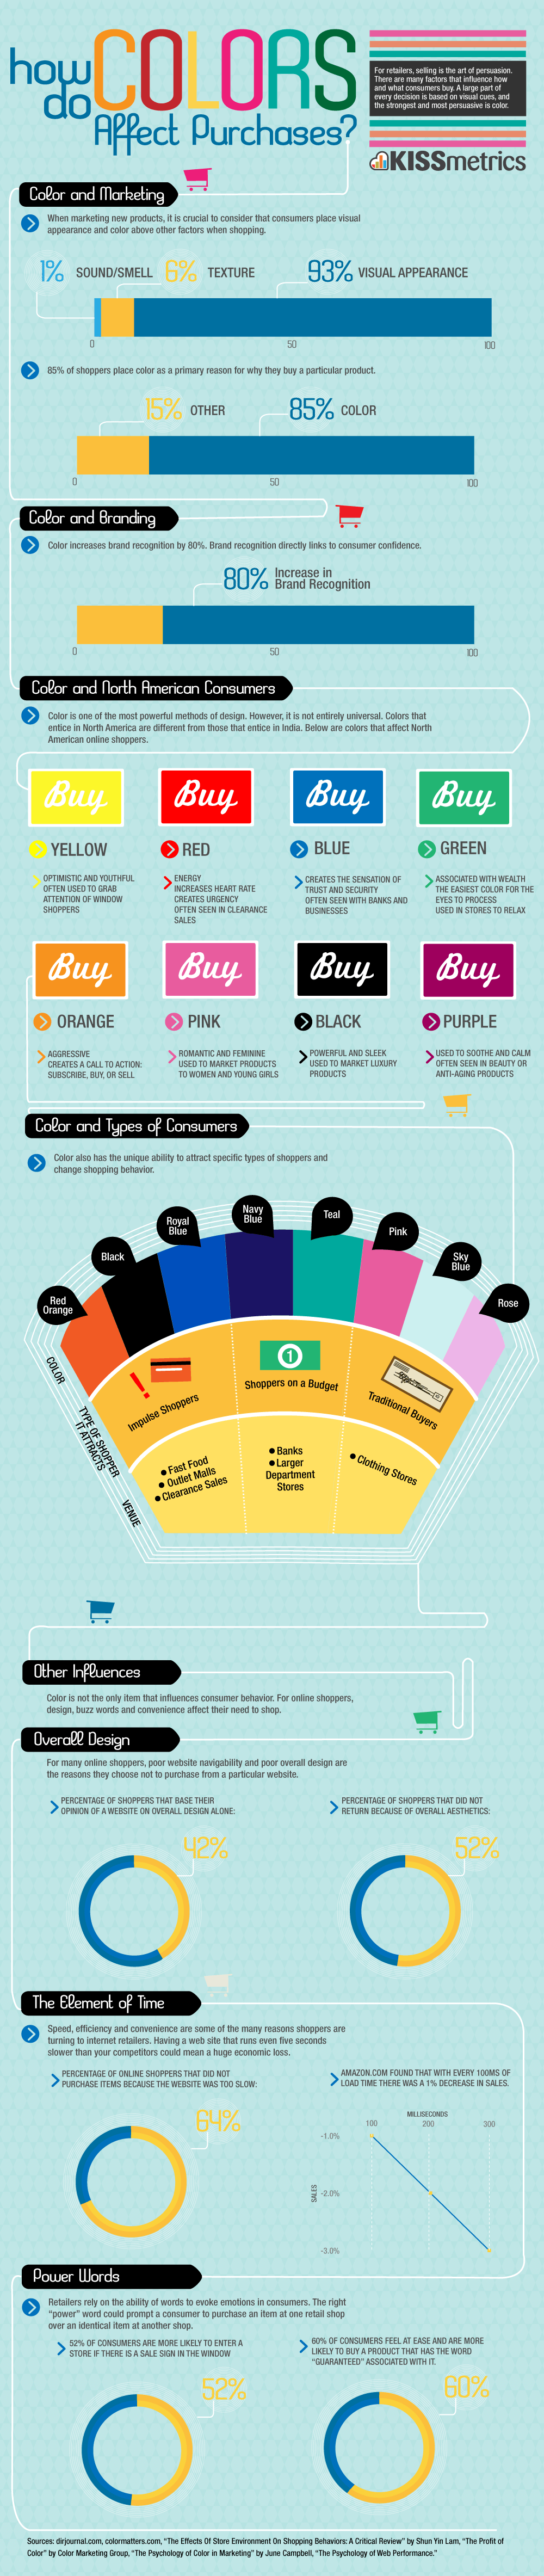 color purchases lrg kissmetrics